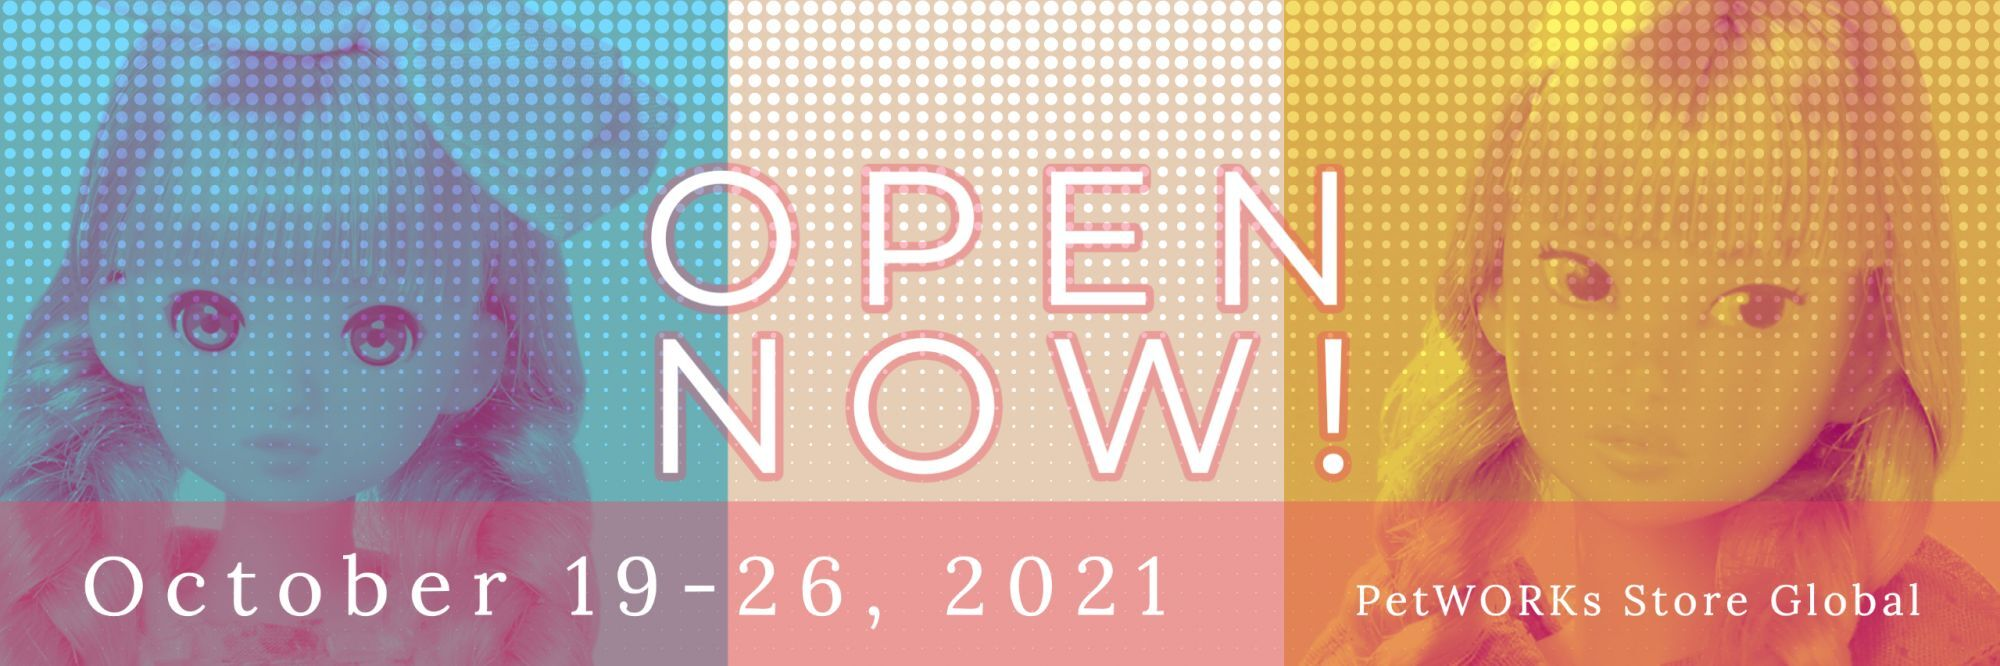 Temporary OPEN NOW!: Oct 19-26, 2021